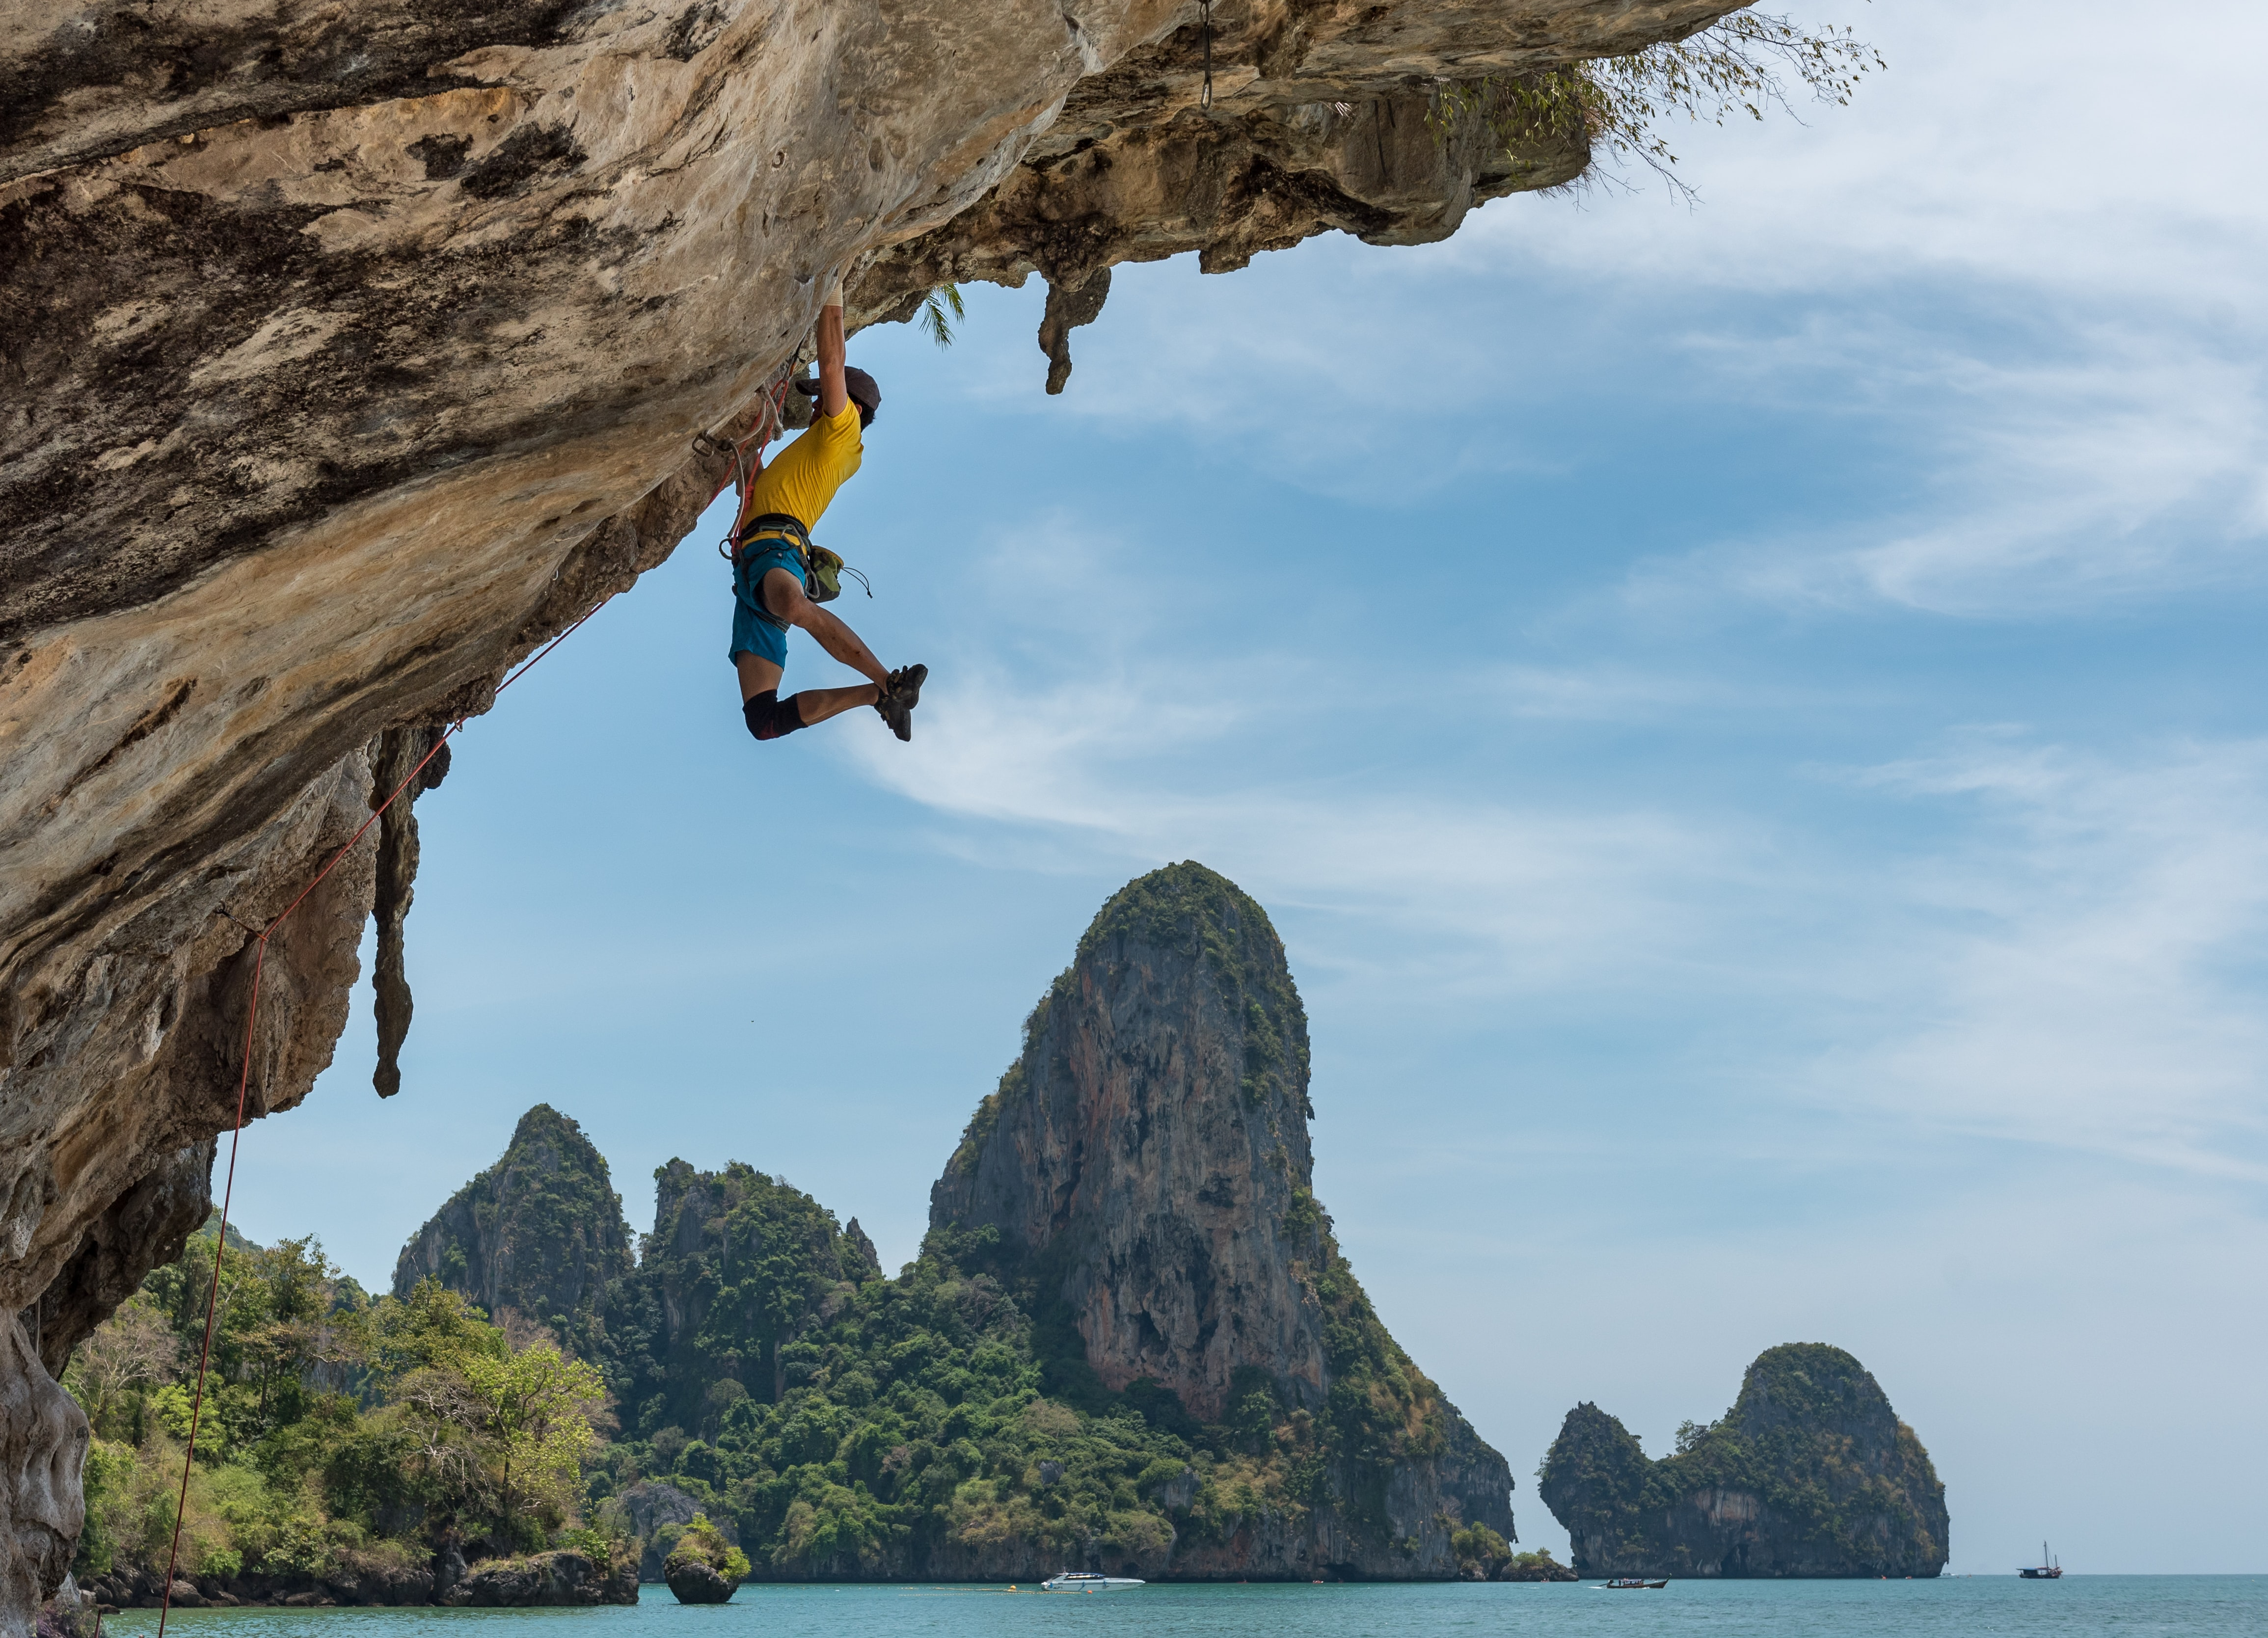 100 rock climbing pictures download free images on unsplashman climbing cliff beside beach